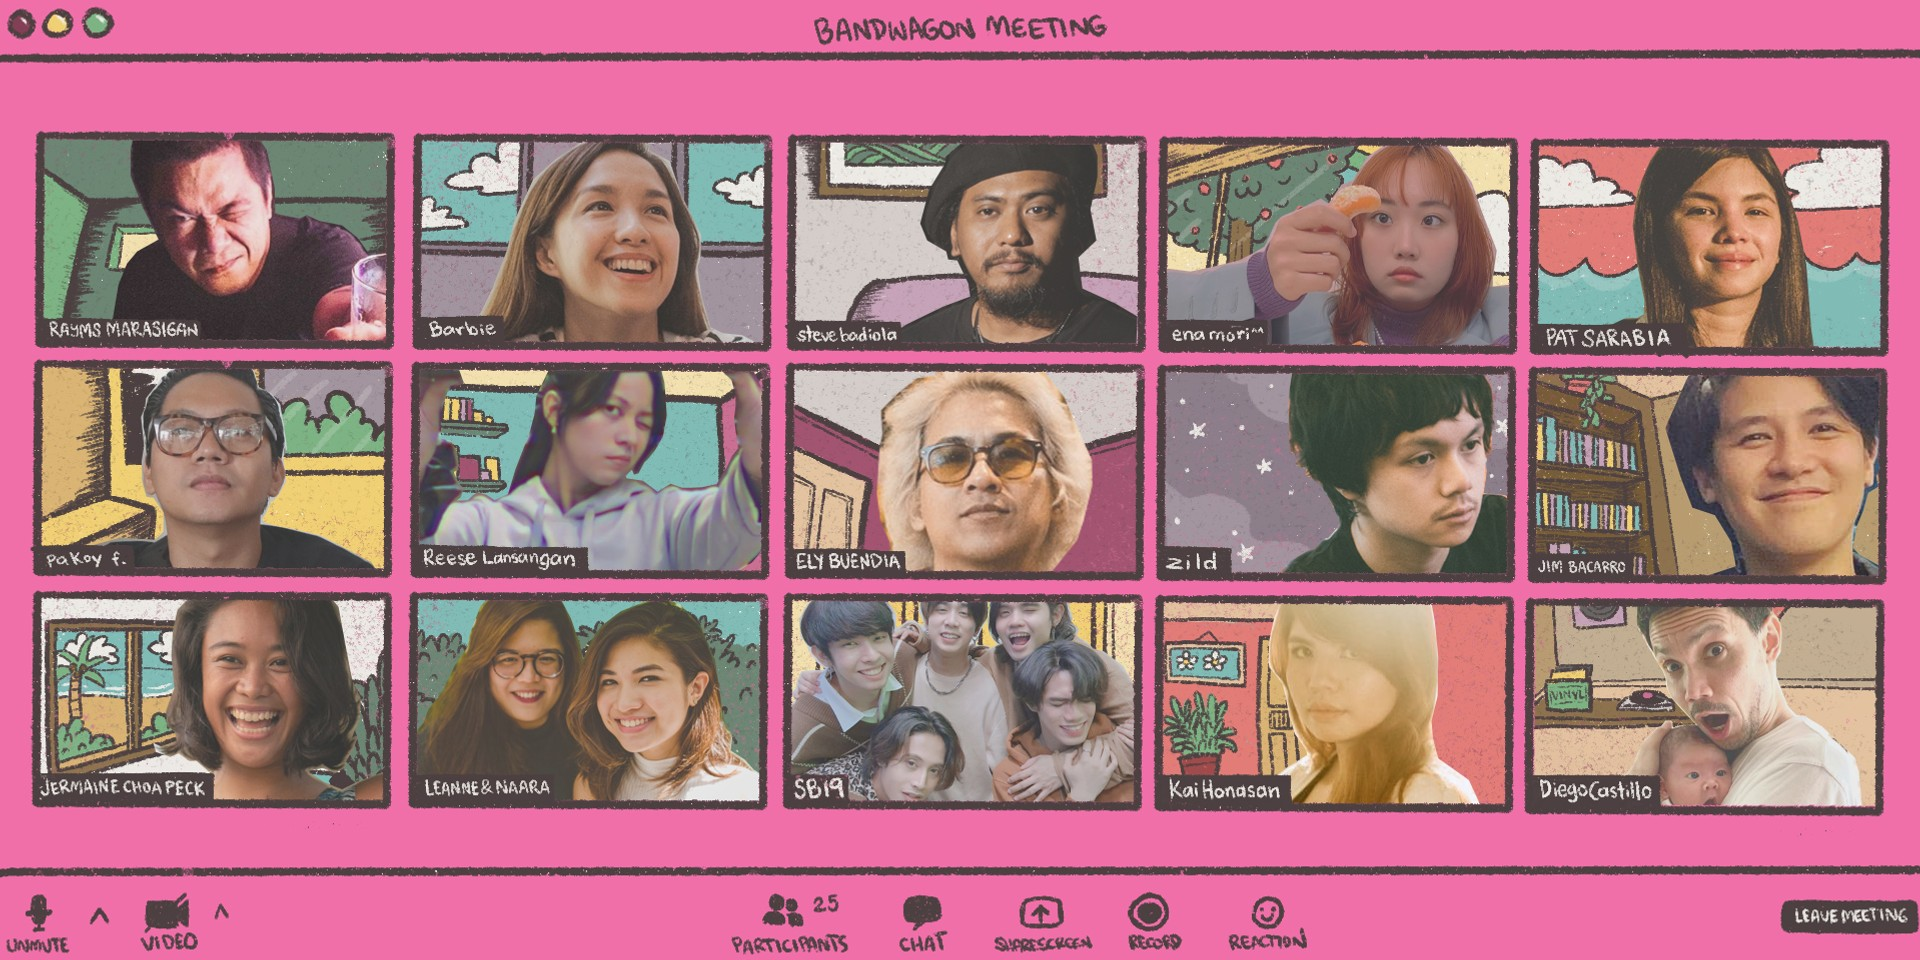 Checking in with Ely Buendia, Sandwich, SB19, Reese Lansangan, Typecast, and more after one year in lockdown